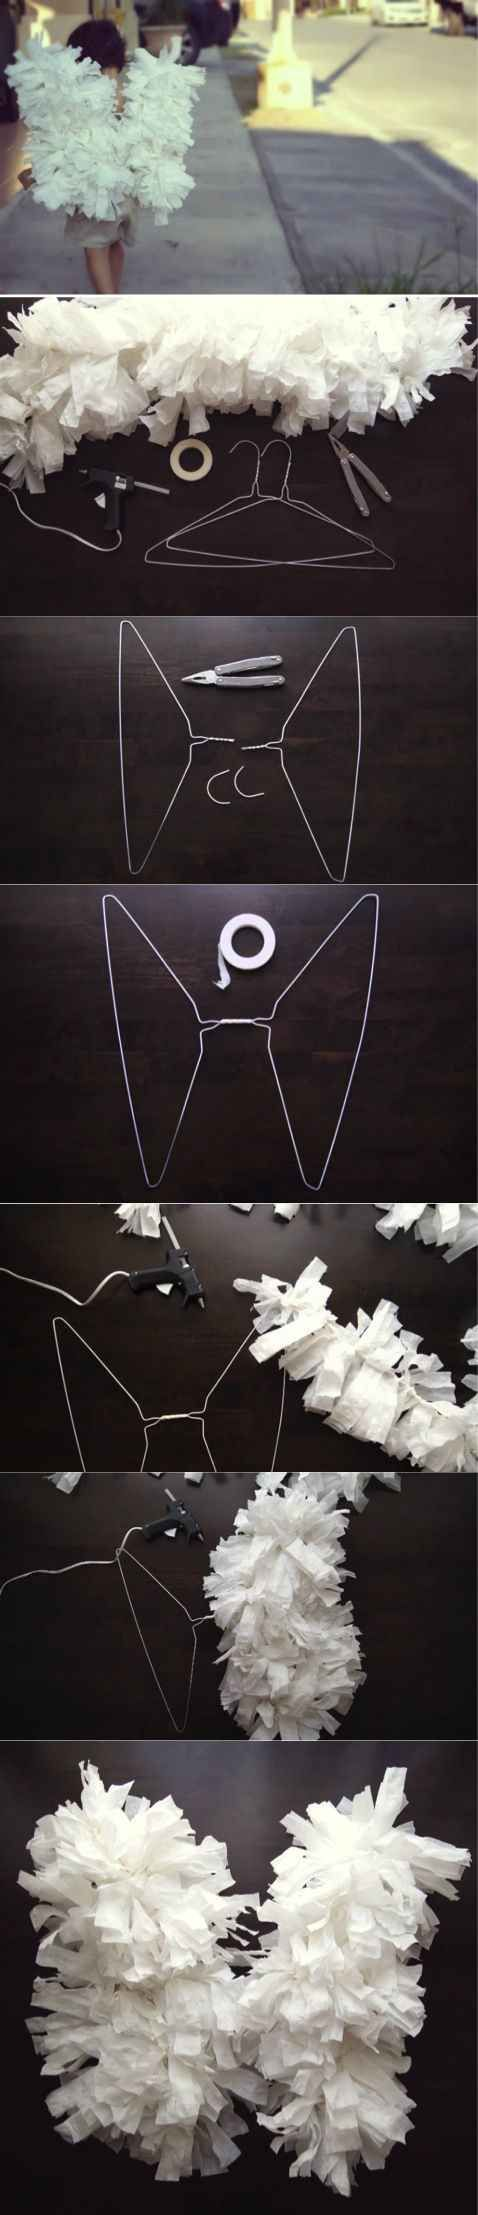 DIY Angel Wings Using Paper and Clothes Hangers.